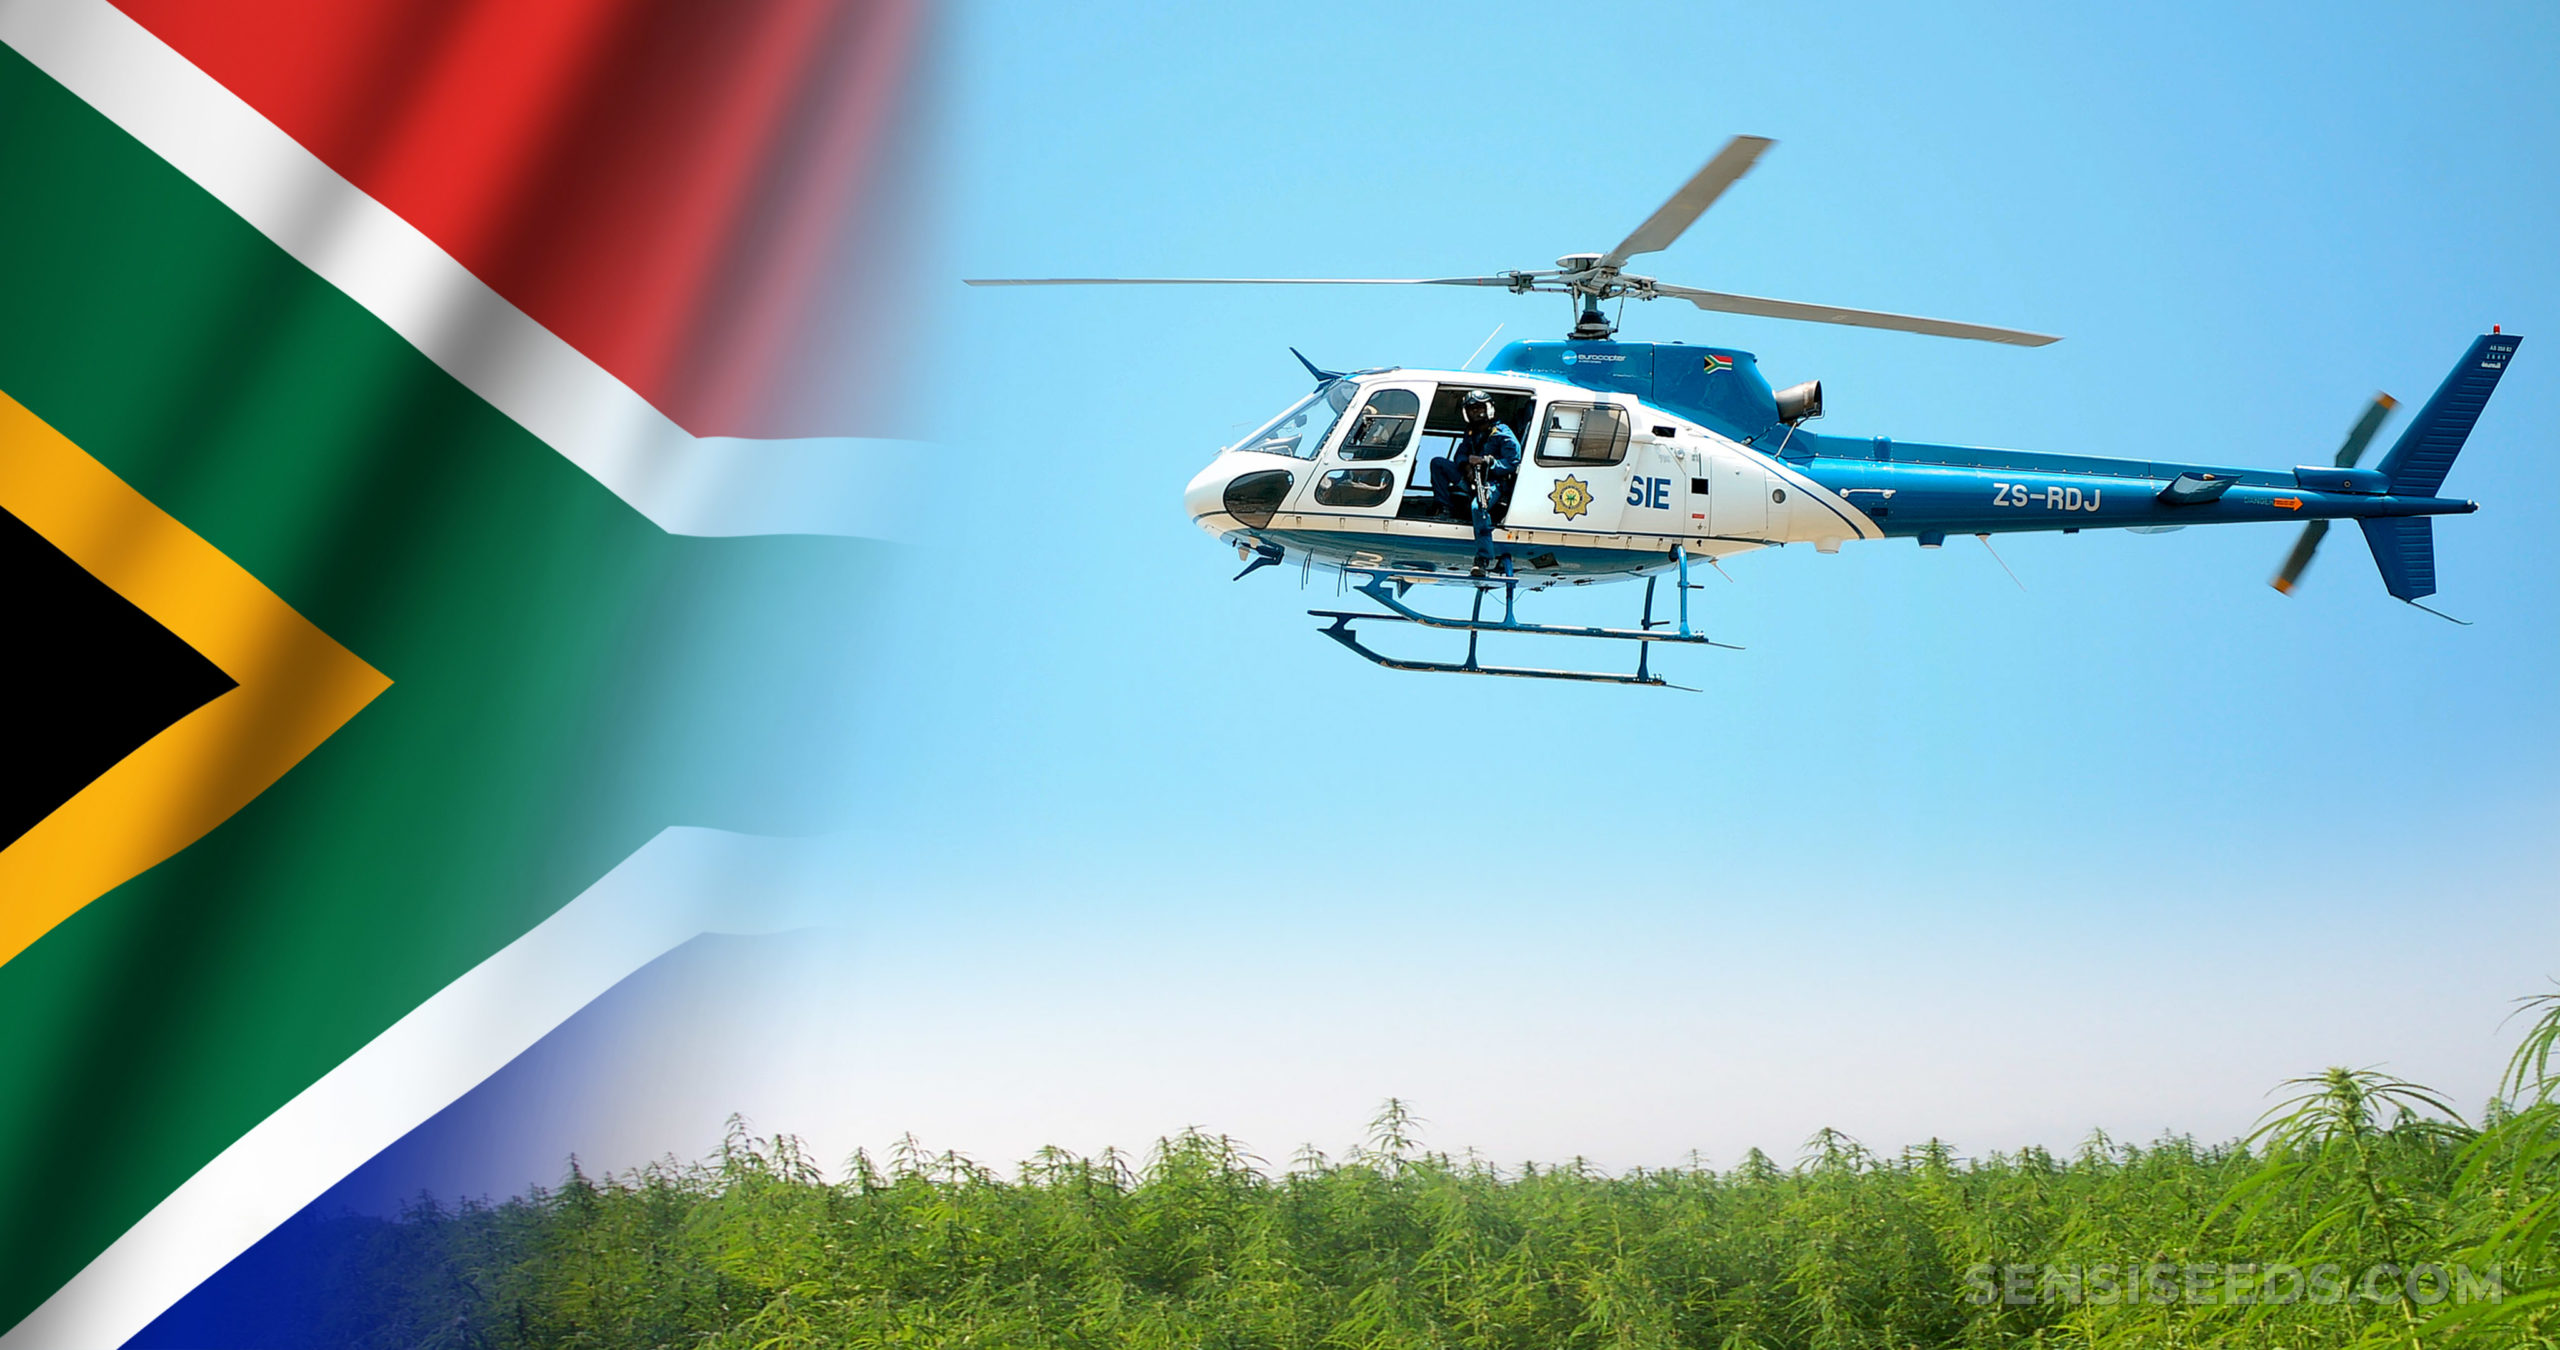 The South African flag and a police helicopter flying over a cannabis field